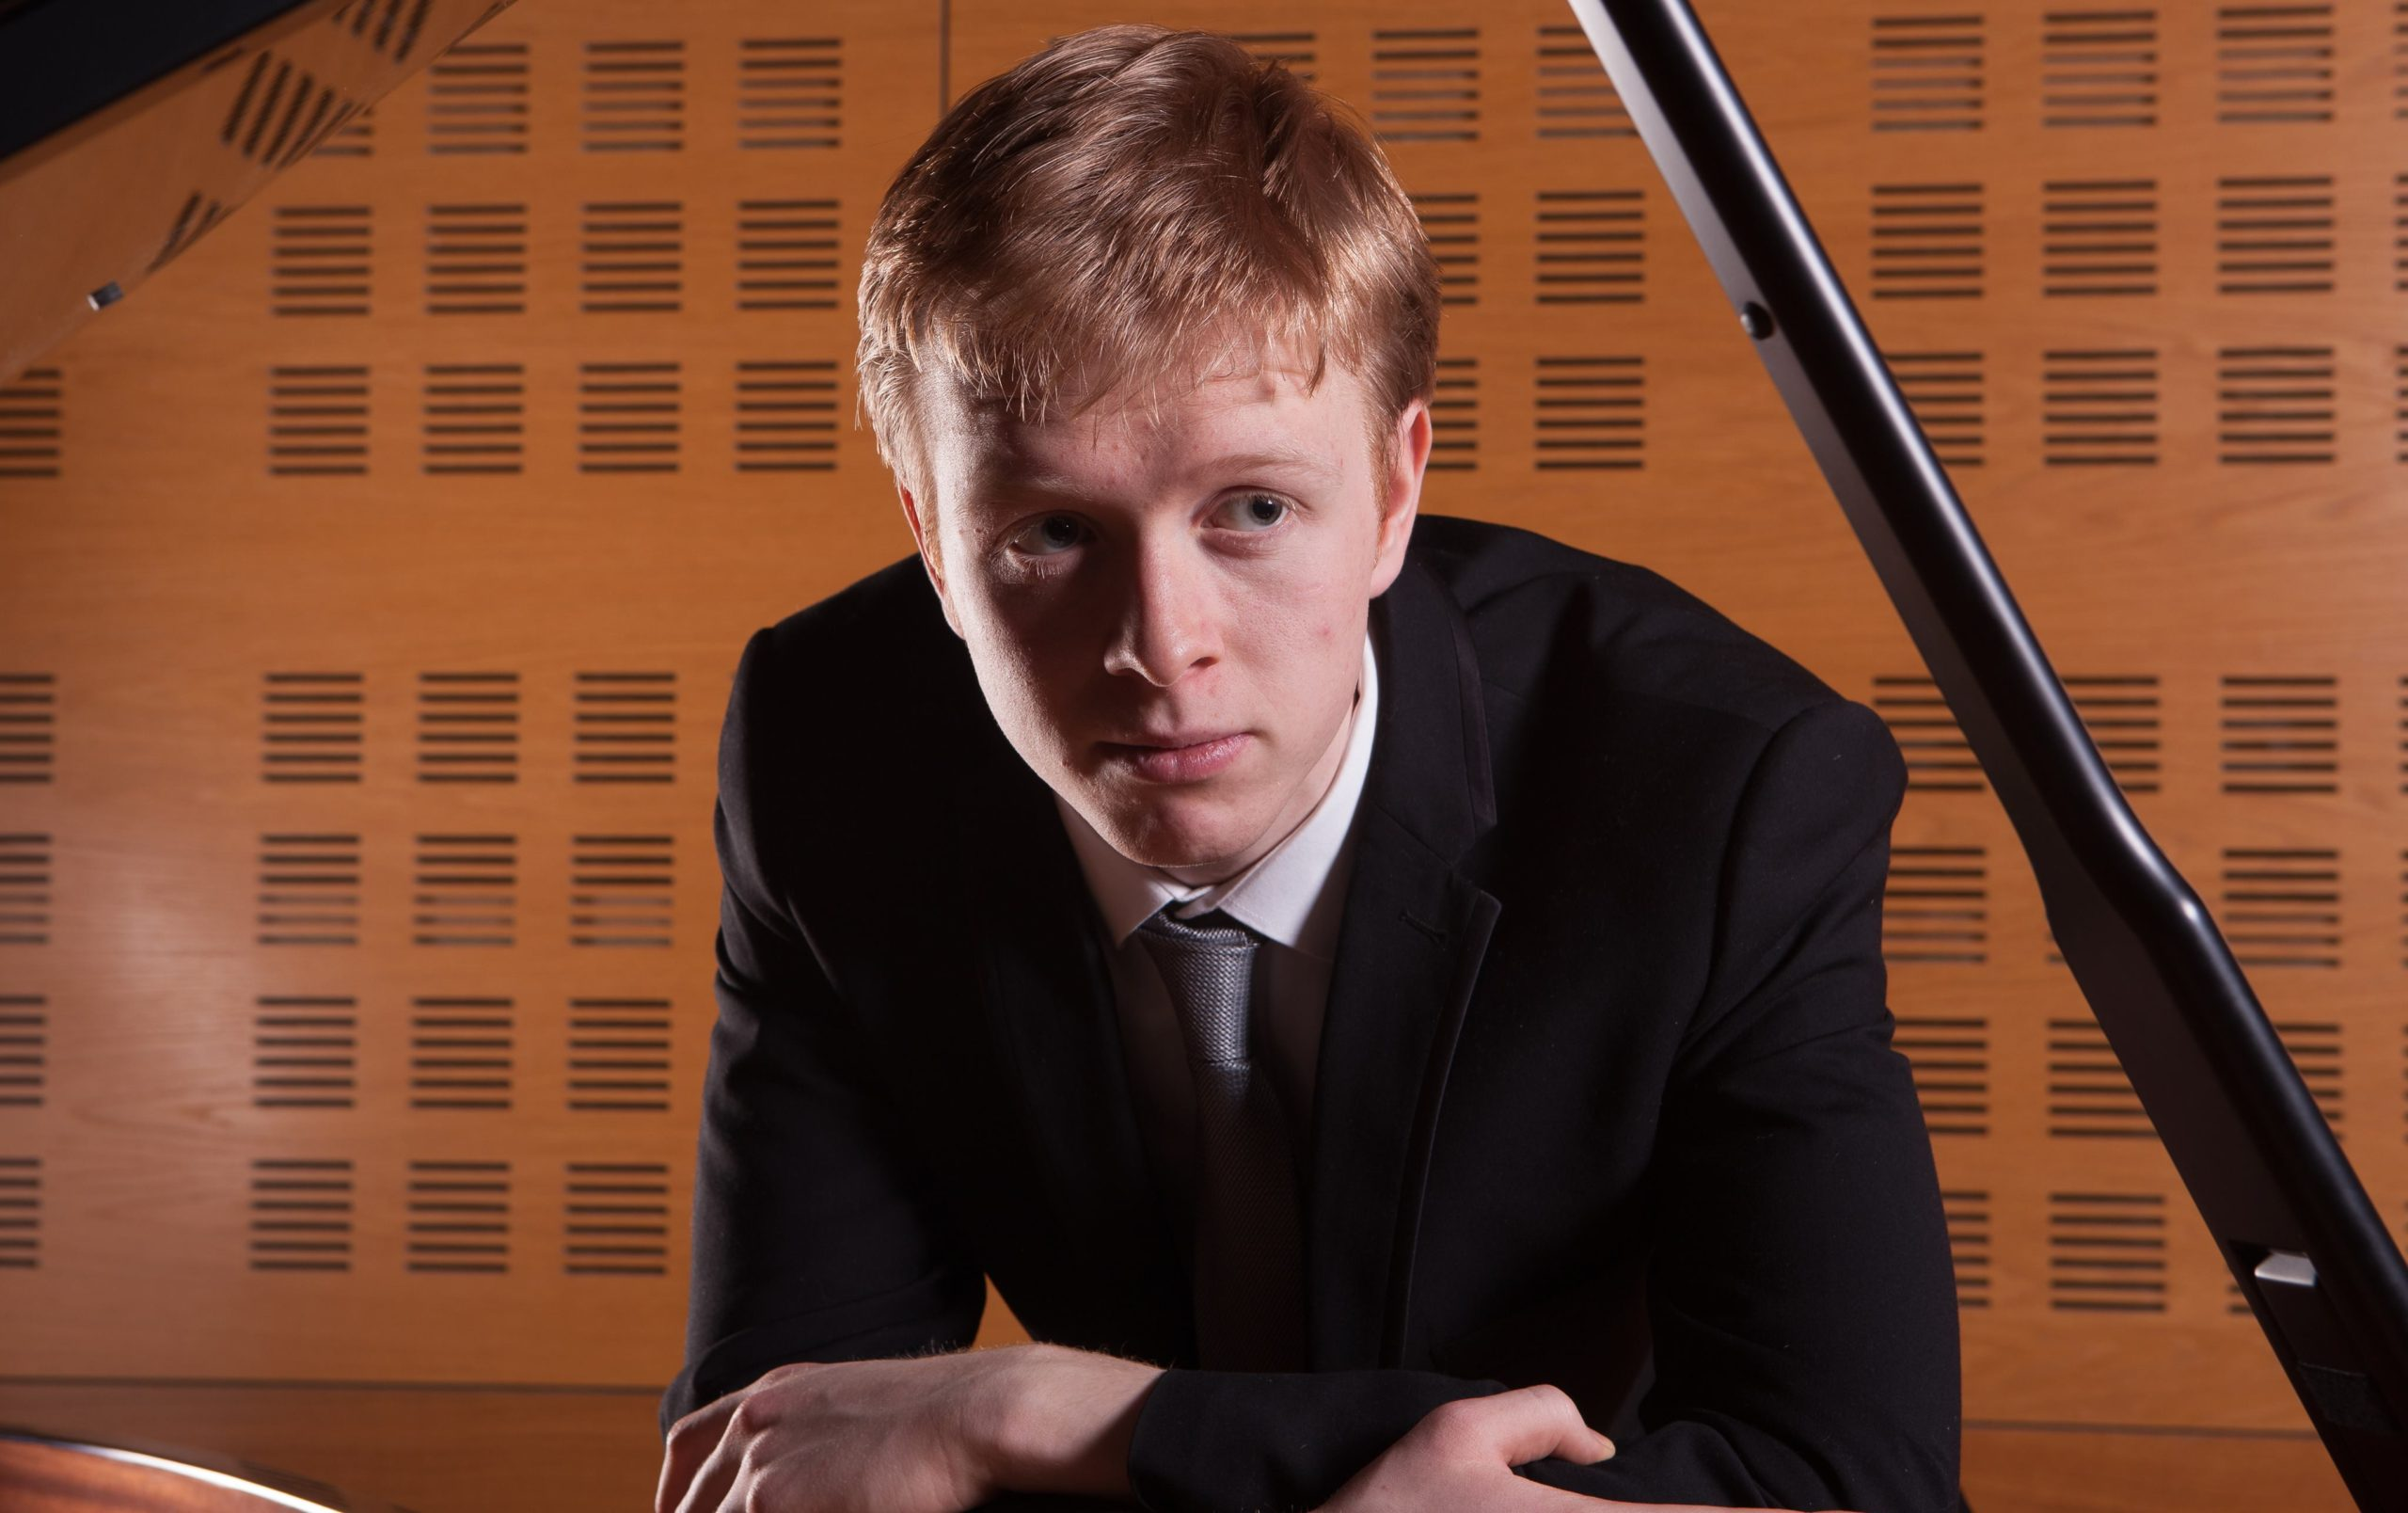 Young piano virtuoso Luke swaps global stage for Wrexham chapel – Charity Concert